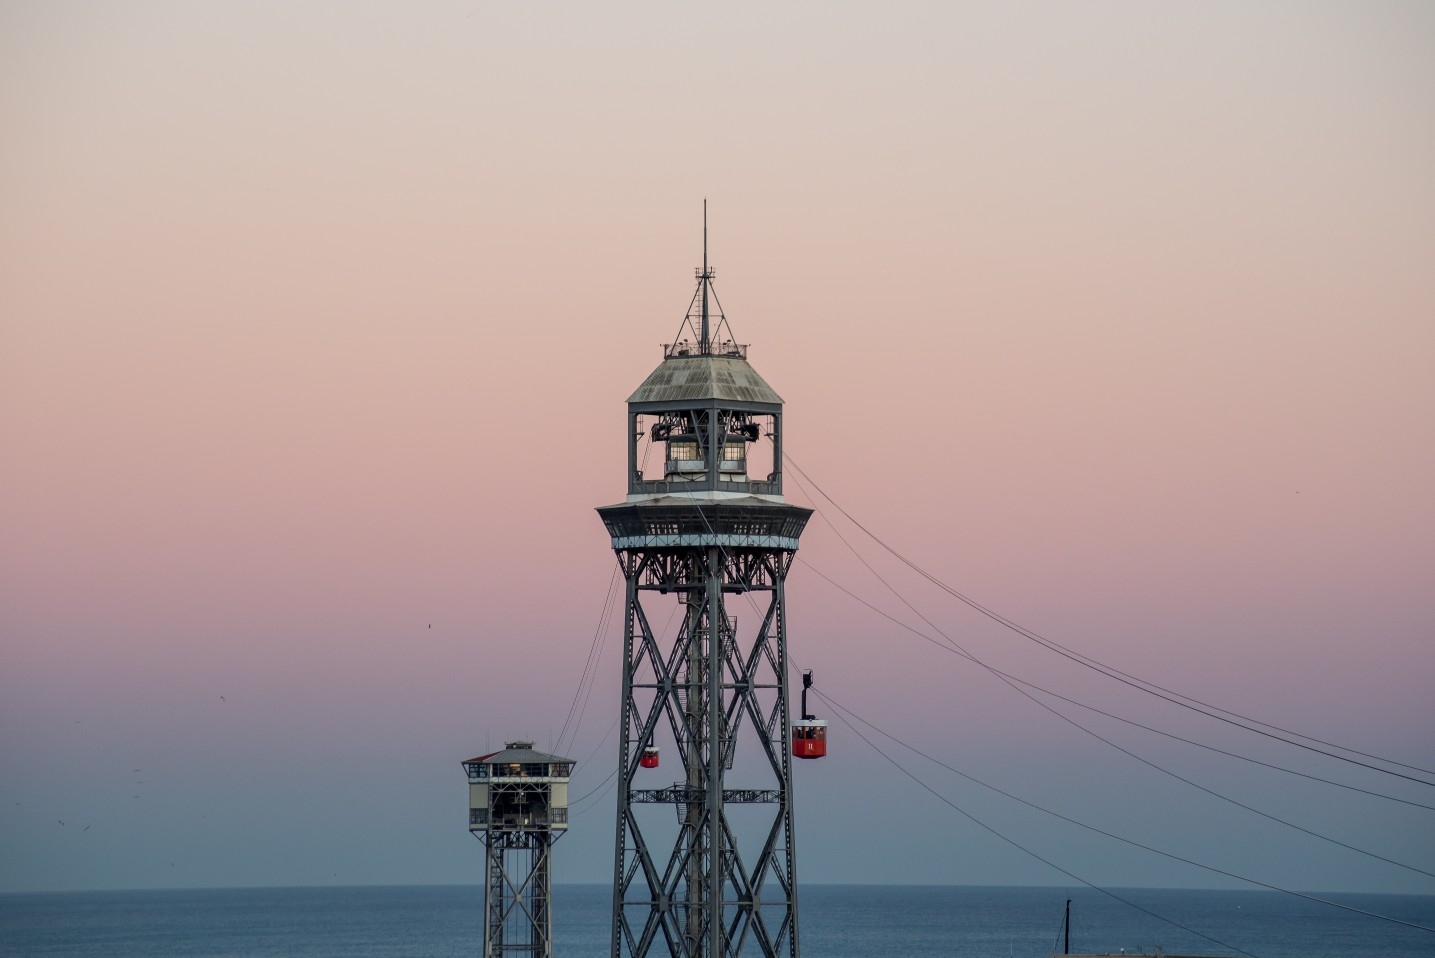 Barcelona's iconic cable car at sunset